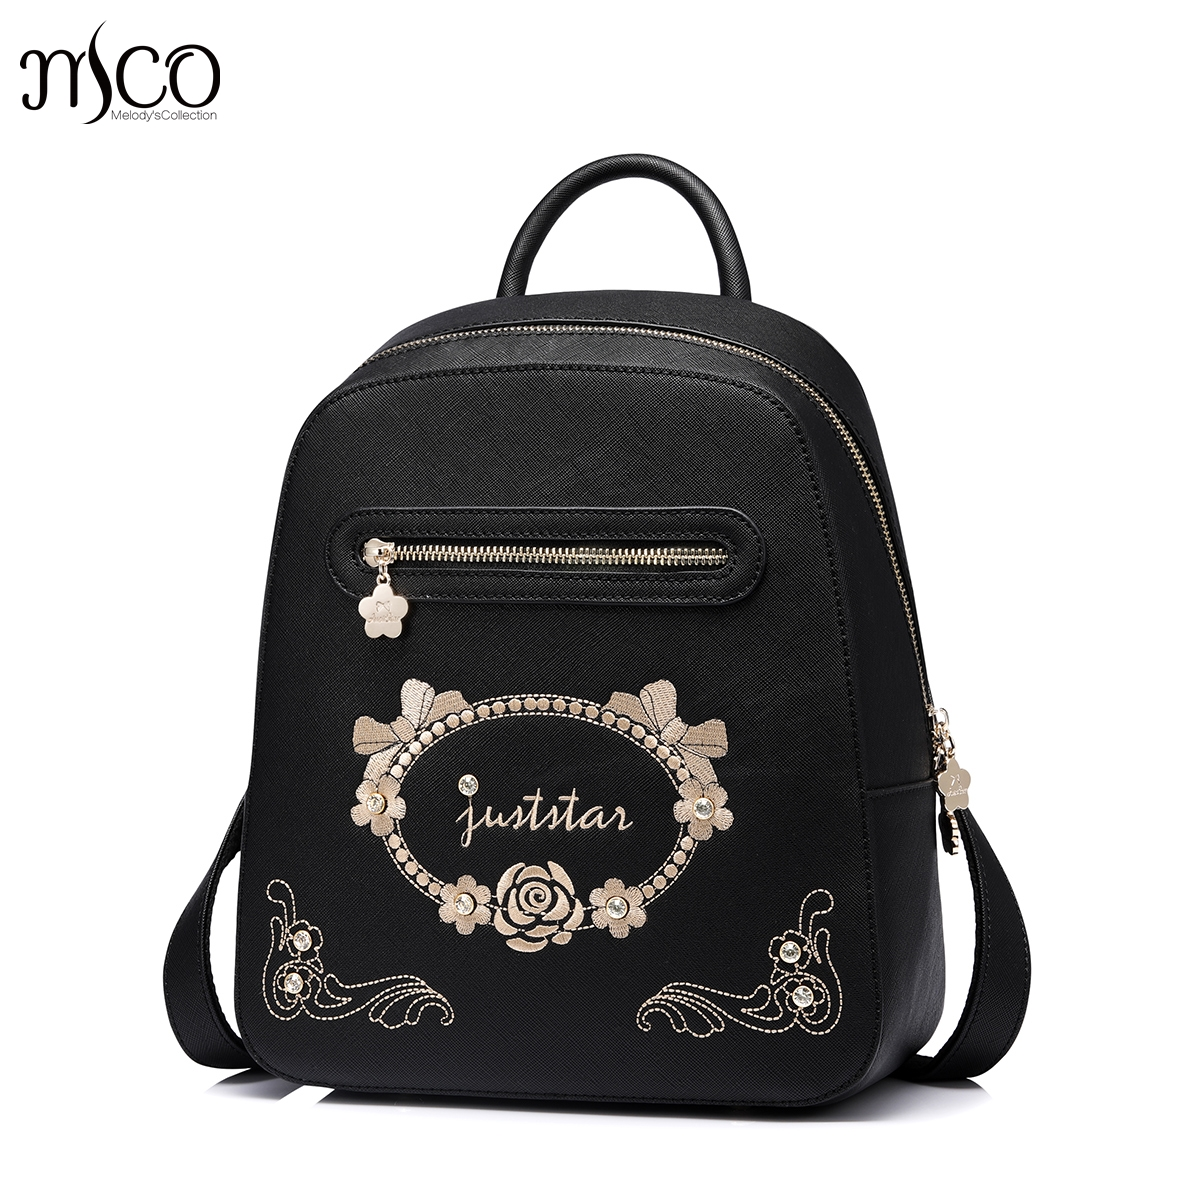 Fashion Embroidery Girl Backpacks Cute School Bags New Women Backpack PU Leather Female Shoulder Bag mochilas mujer 2017 women backpacks fashion pu leather shoulder bag small backpack women embroidery dragonfly floral school bags for girls